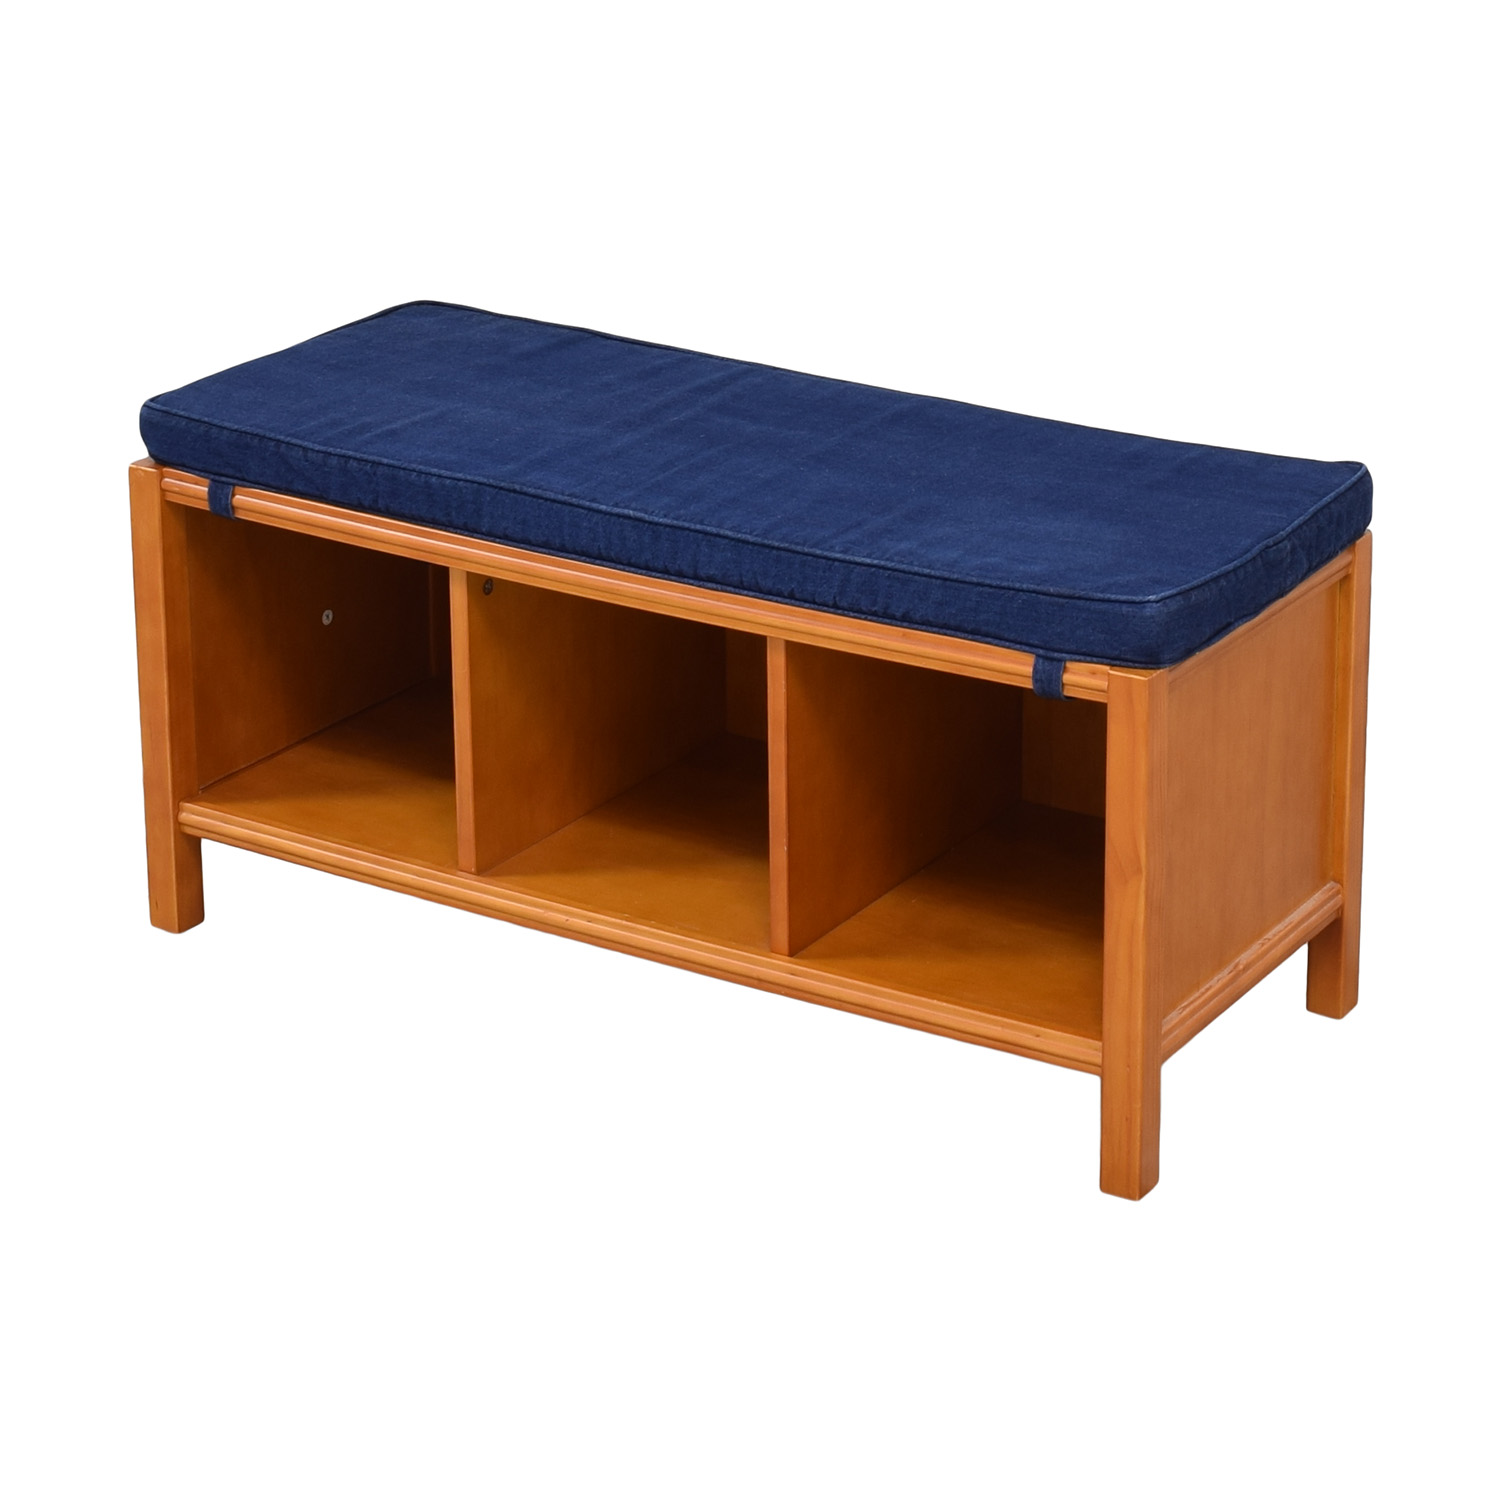 Land of Nod The Land of Nod Three Cube Bench with Cushion Chairs